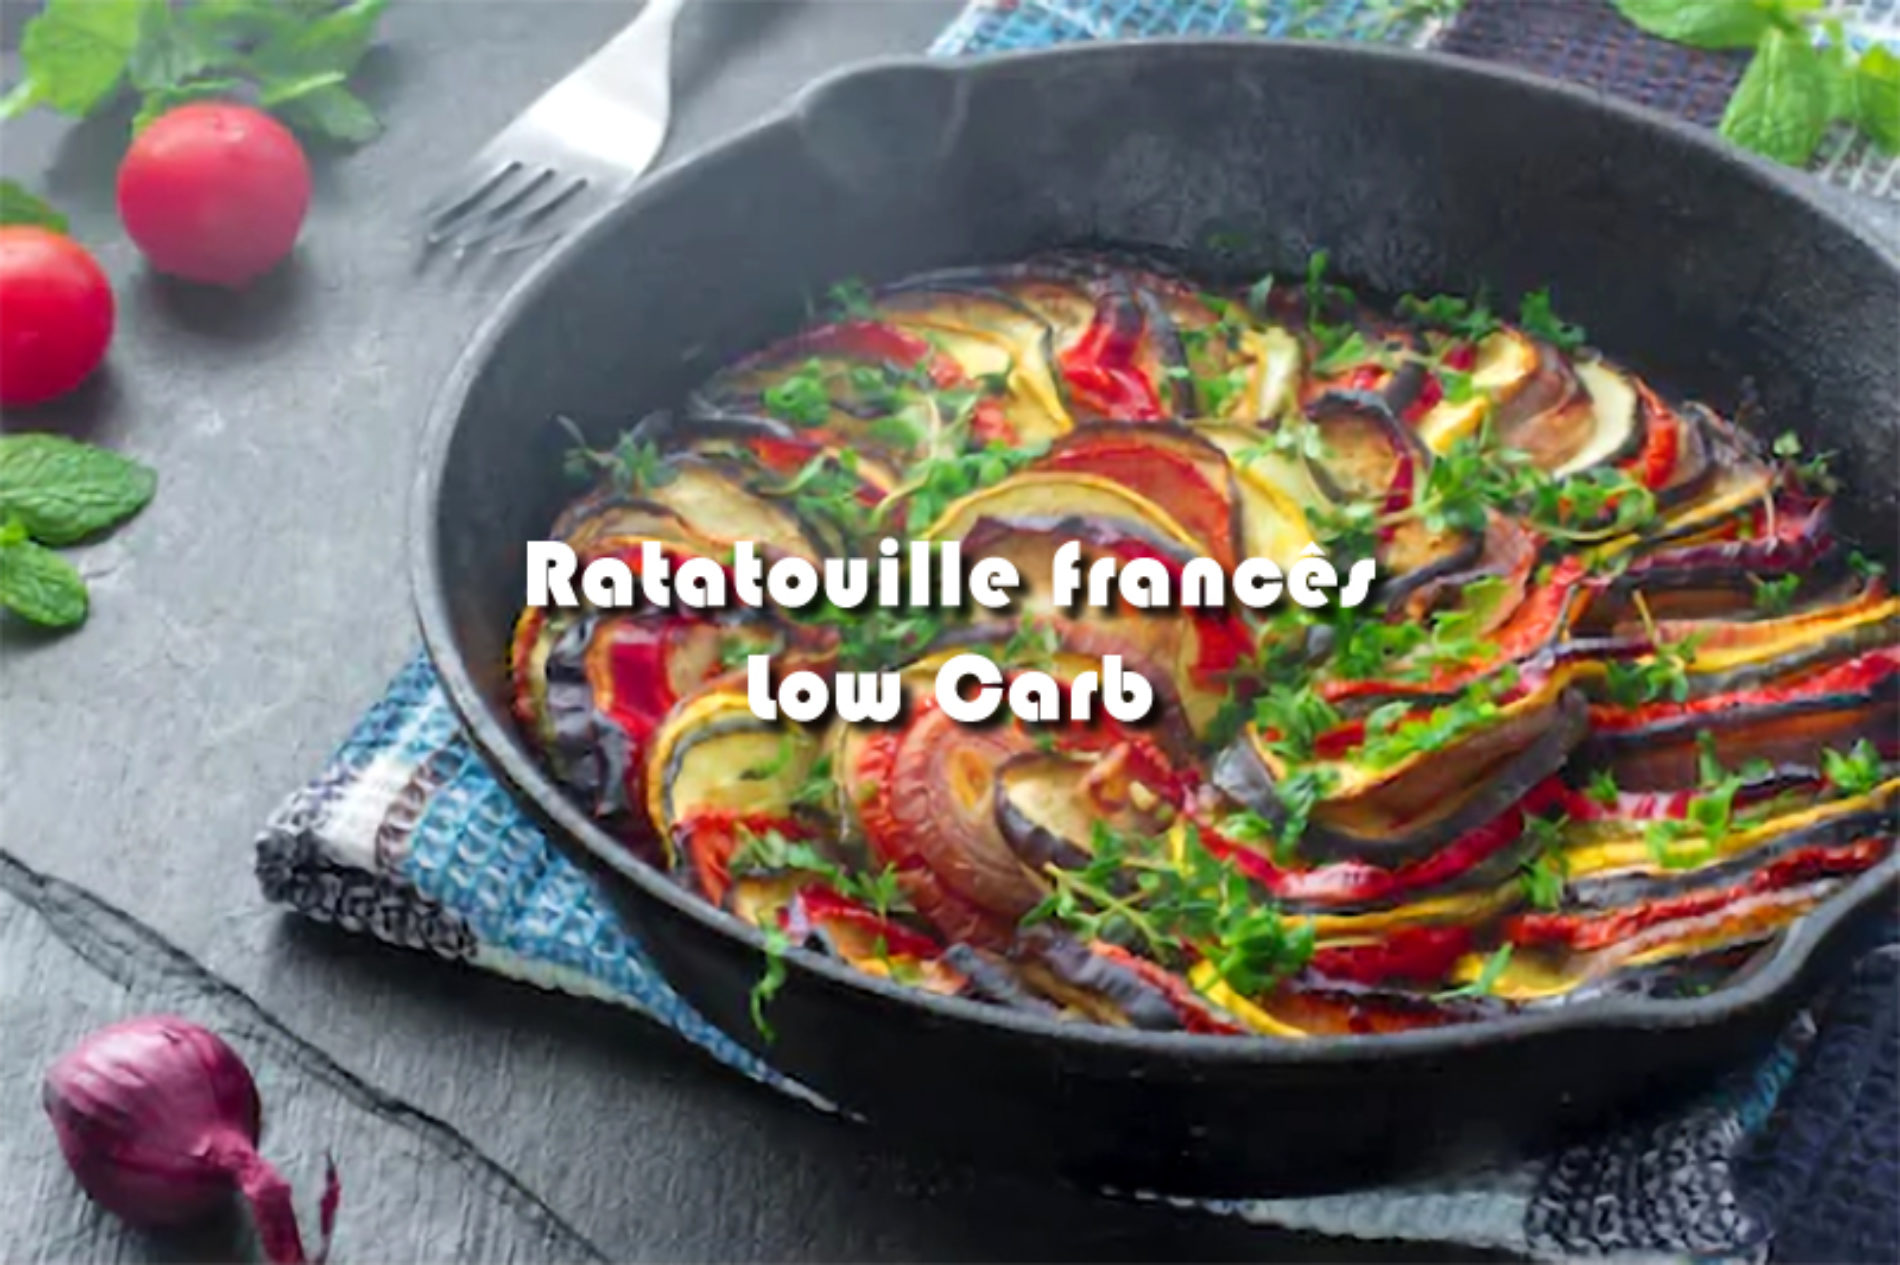 Ratatouille francês Low Carb